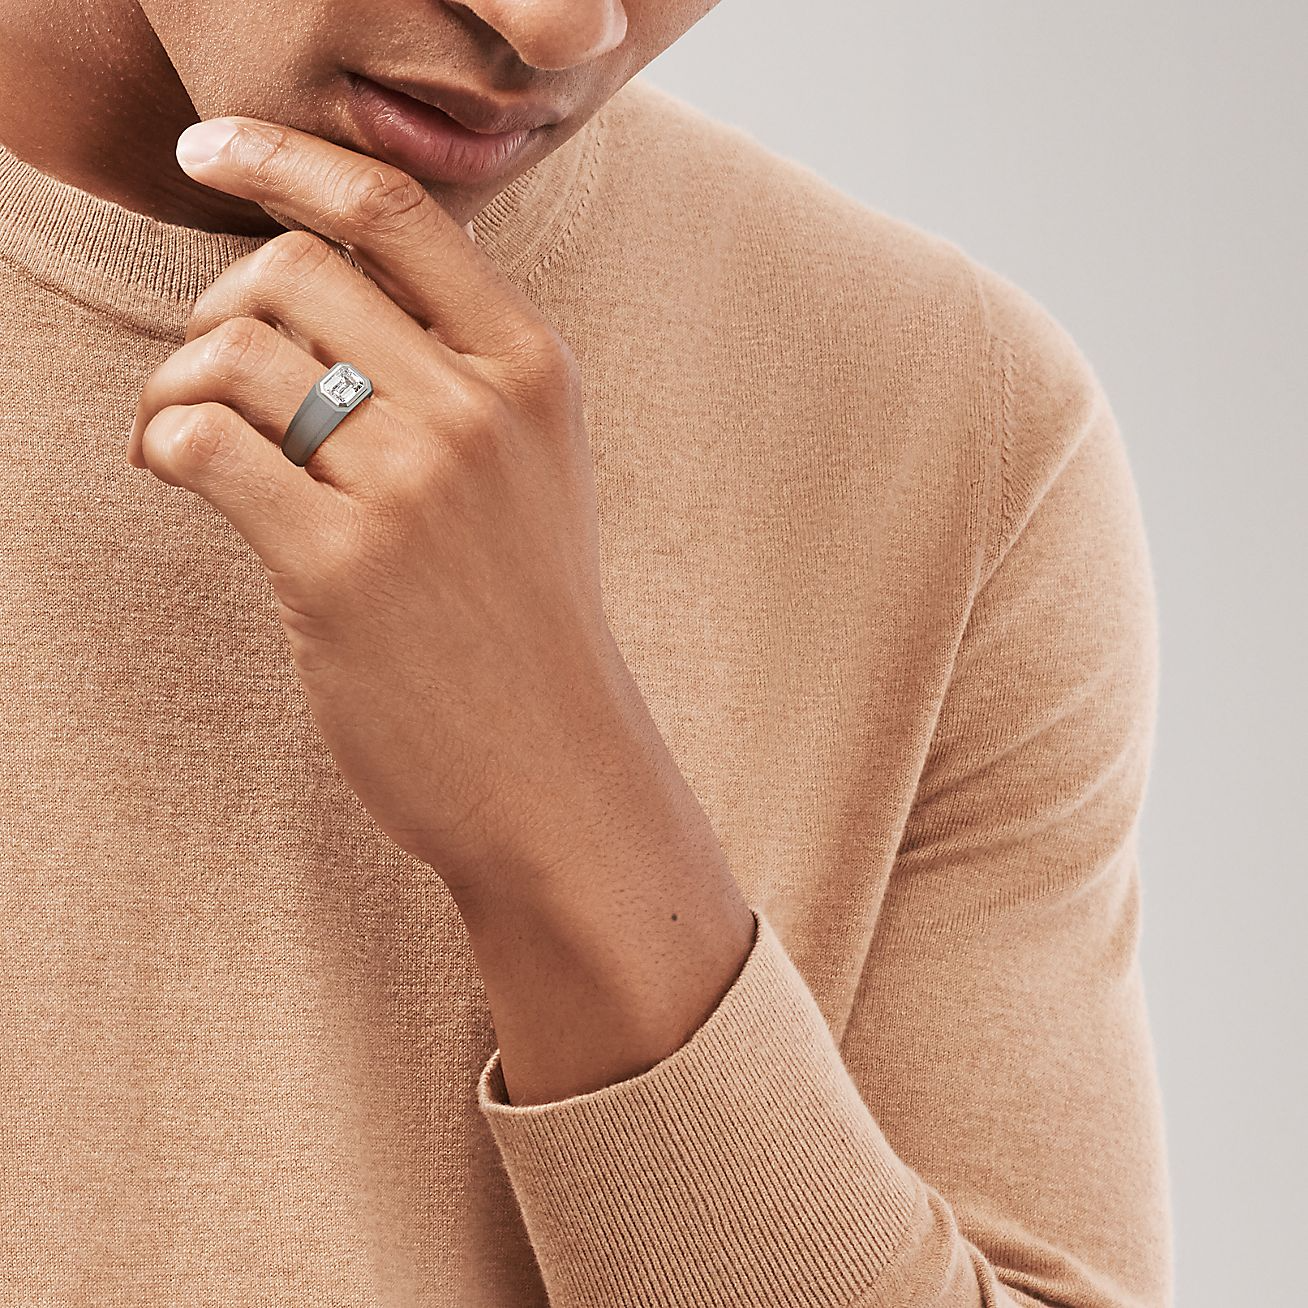 Tiffany & Co. Launches An Engagement Ring For Men